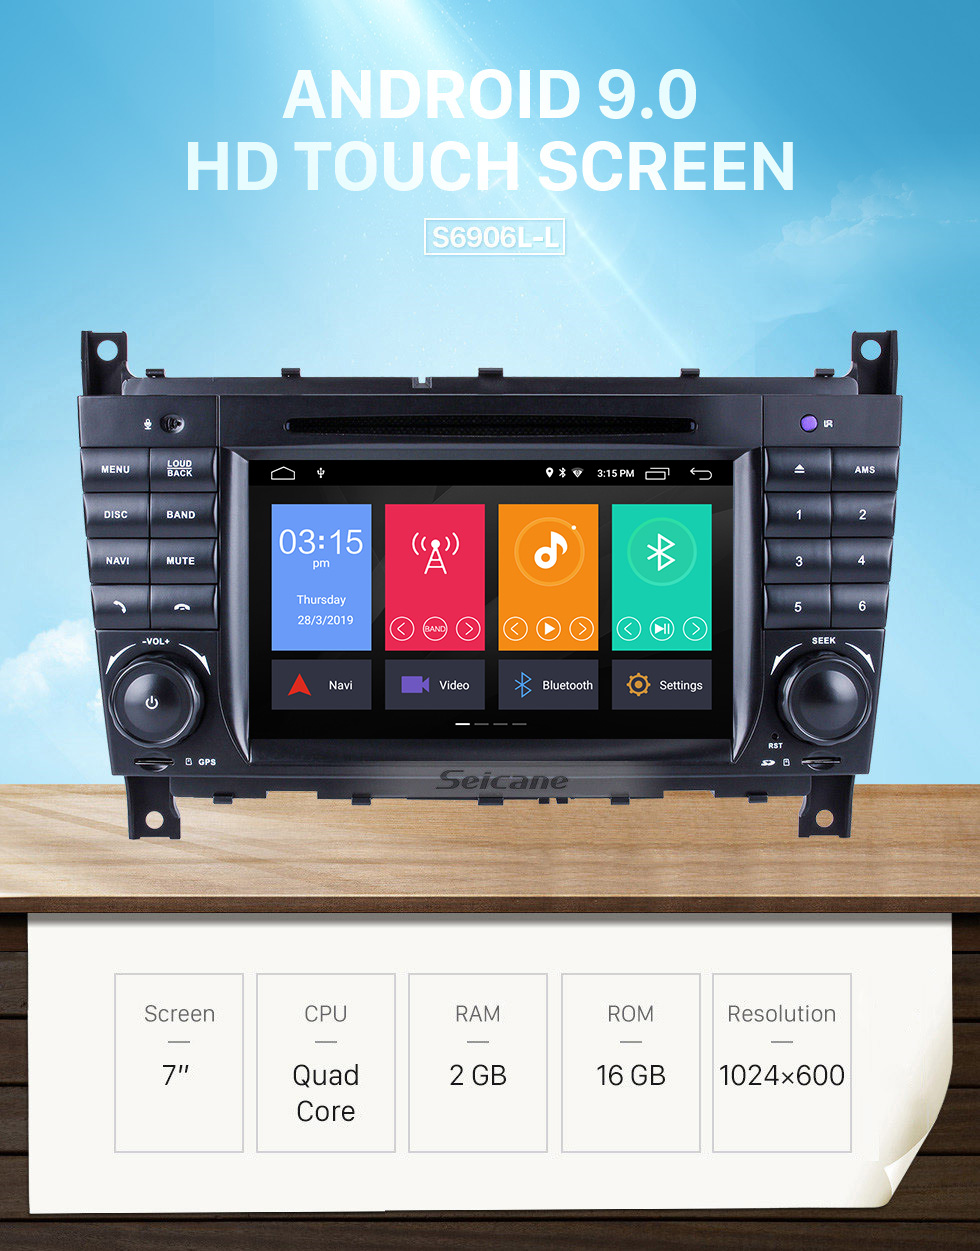 Seicane Android 9.0 Car Radio DVD GPS System for 2004-2007 Mercedes Benz C Class W203 C180 C200 C220 C230 with 3G WiFi AM FM Radio Bluetooth Mirror Link OBD2 AUX DVR